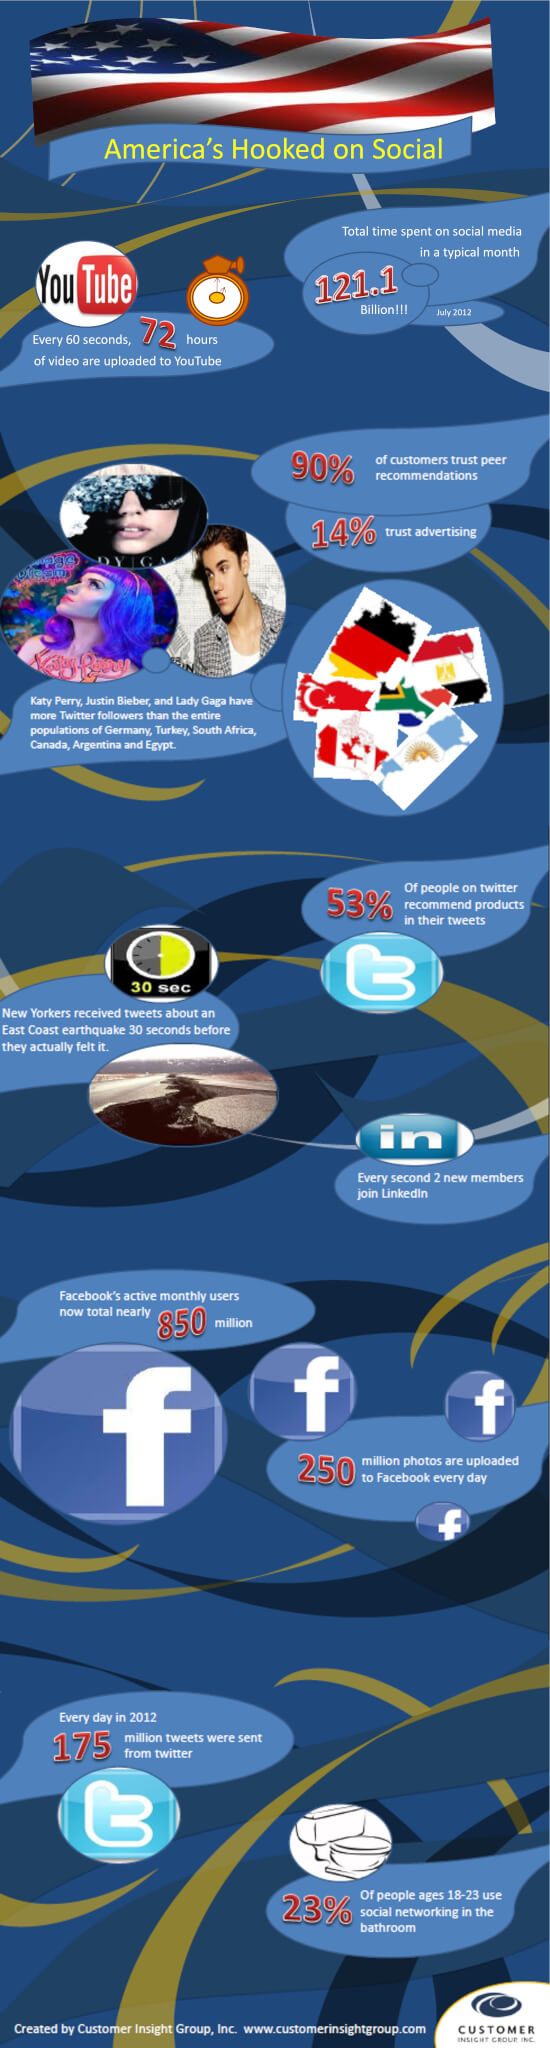 CIG_Infographic_HookedSocial_2013